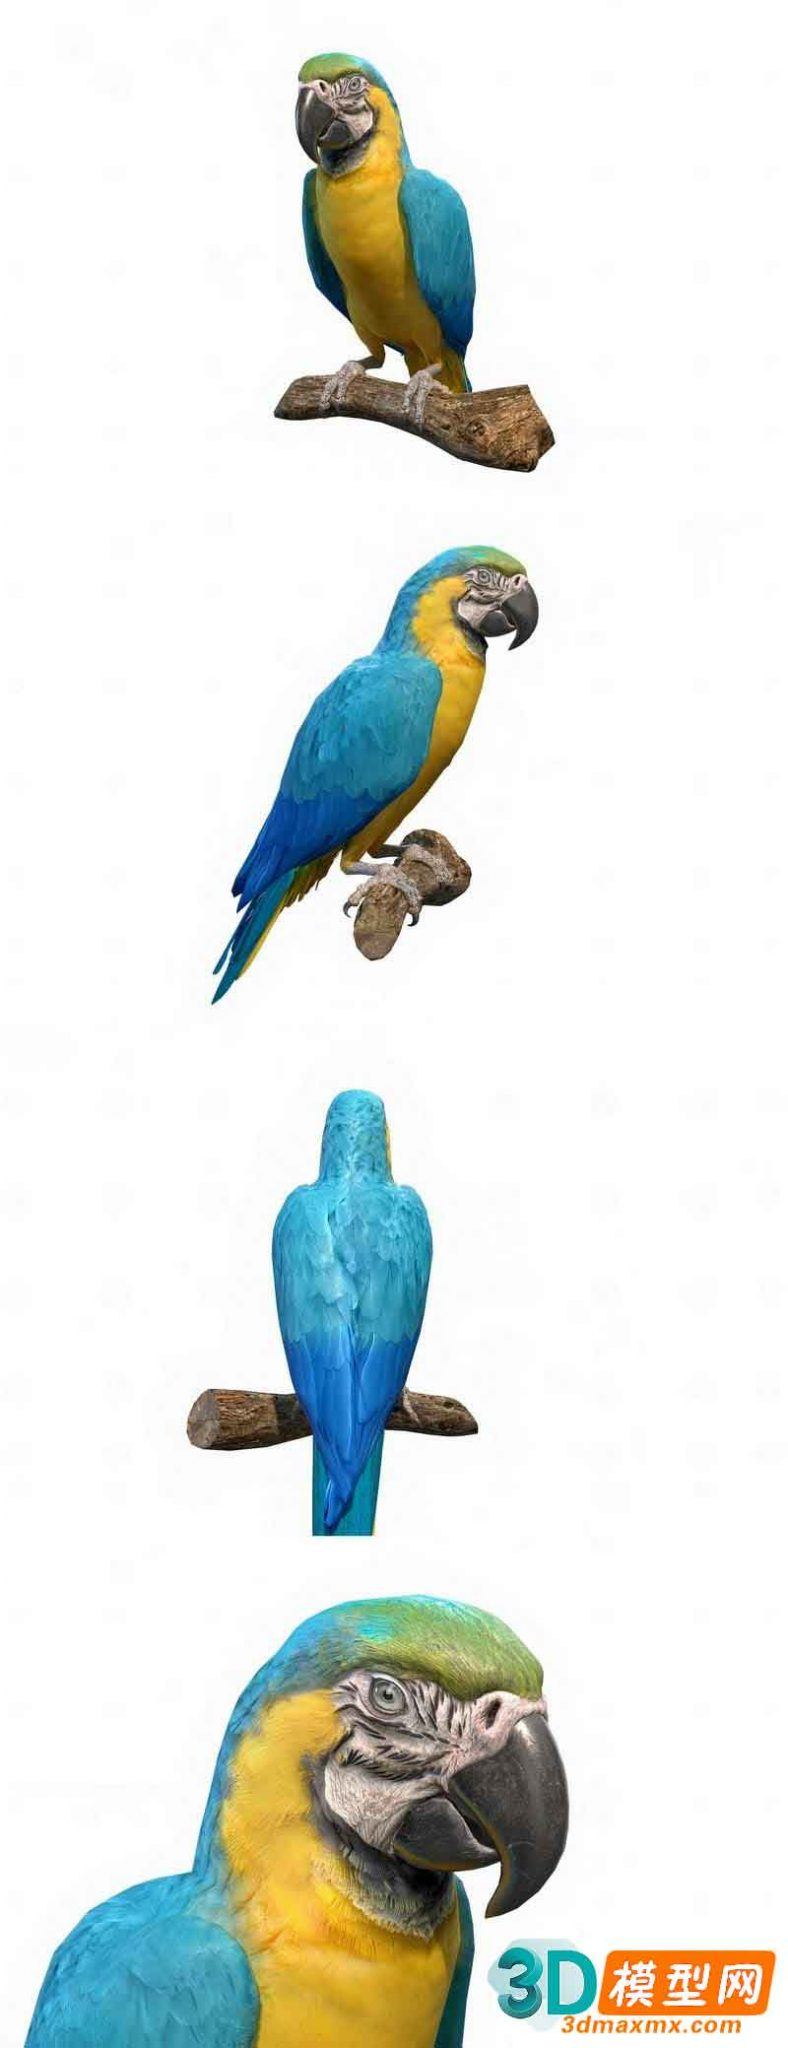 Blue and Gold Macaw Parrot插图